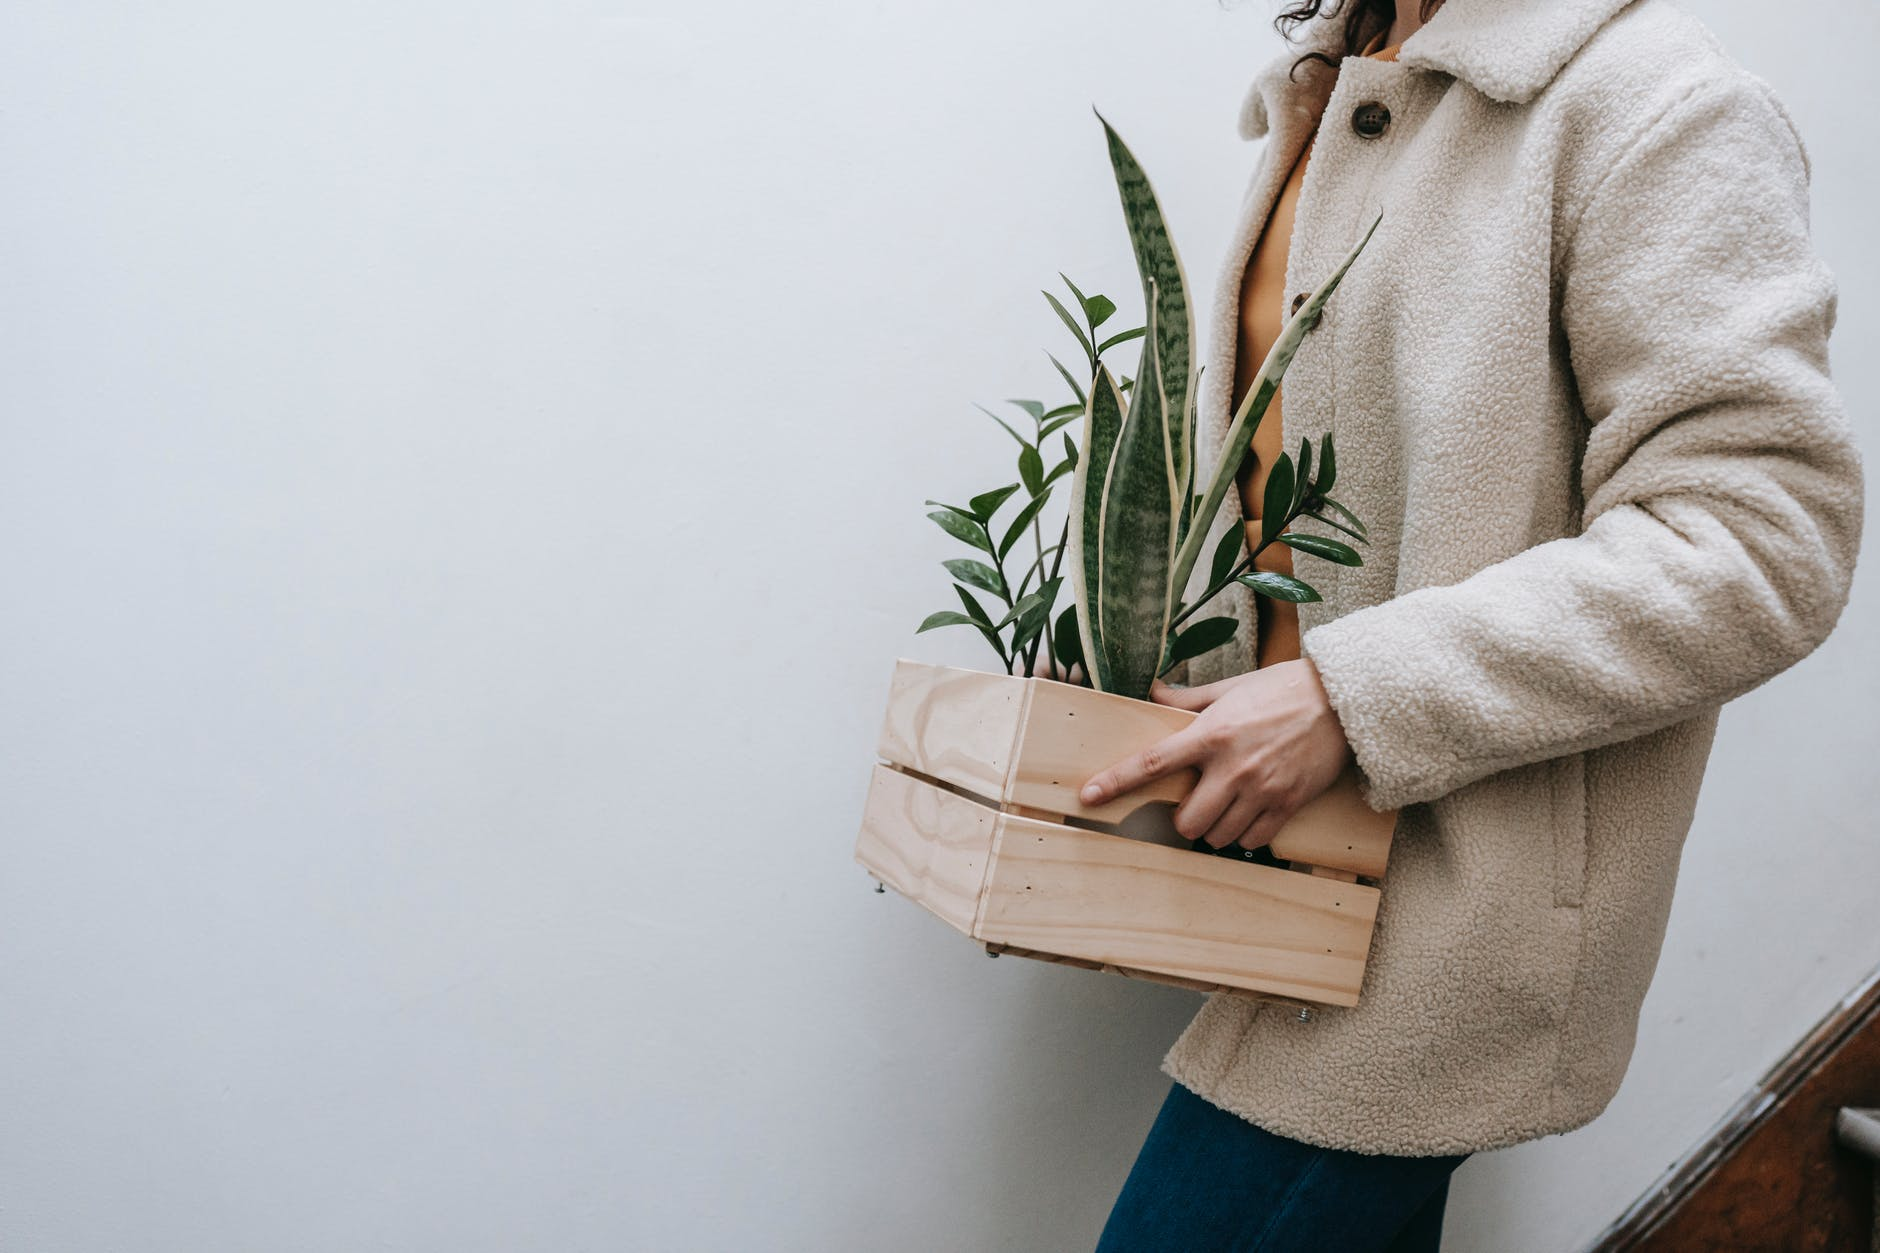 woman carrying a small crate with plants